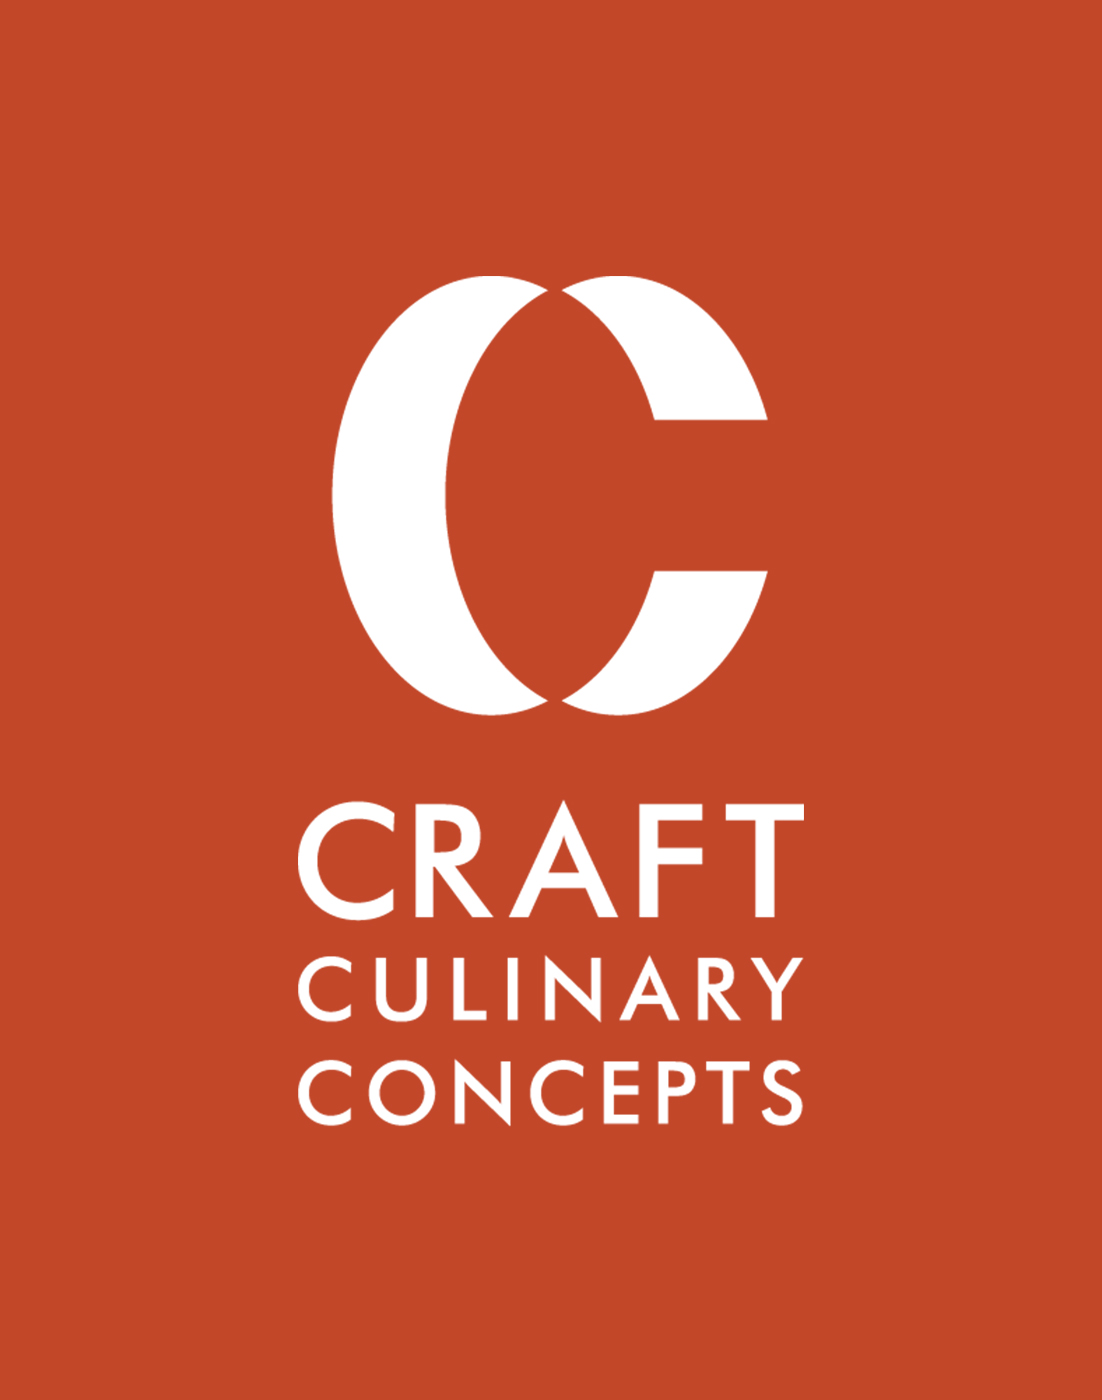 Craft Culinary Concepts - Glendale, AZ